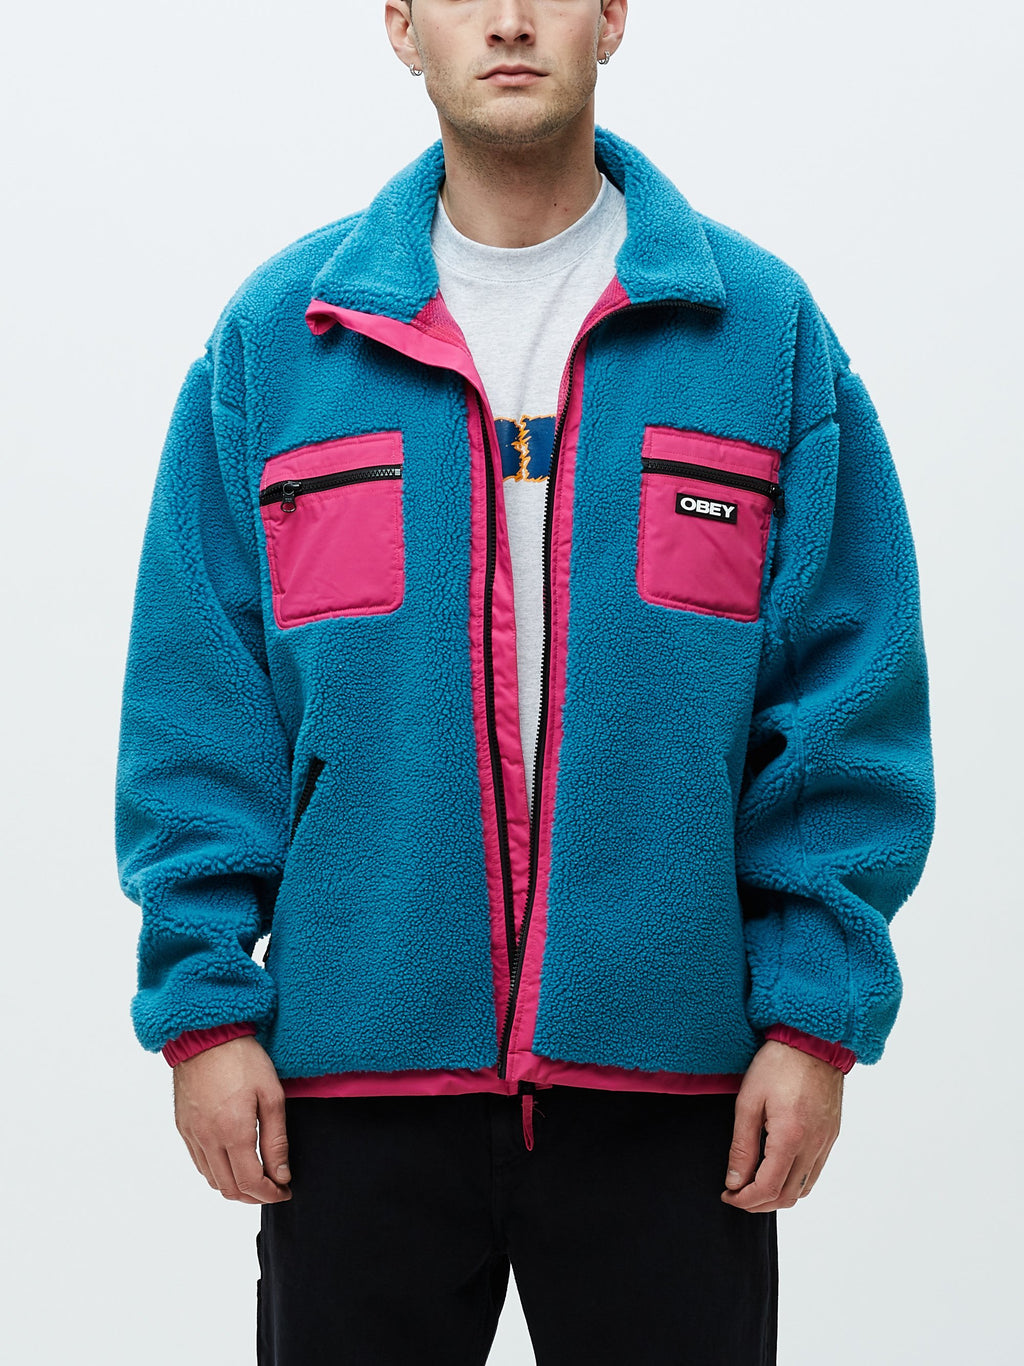 Obey - Out There Sherpa Jacket - Pure Teal - Guyz